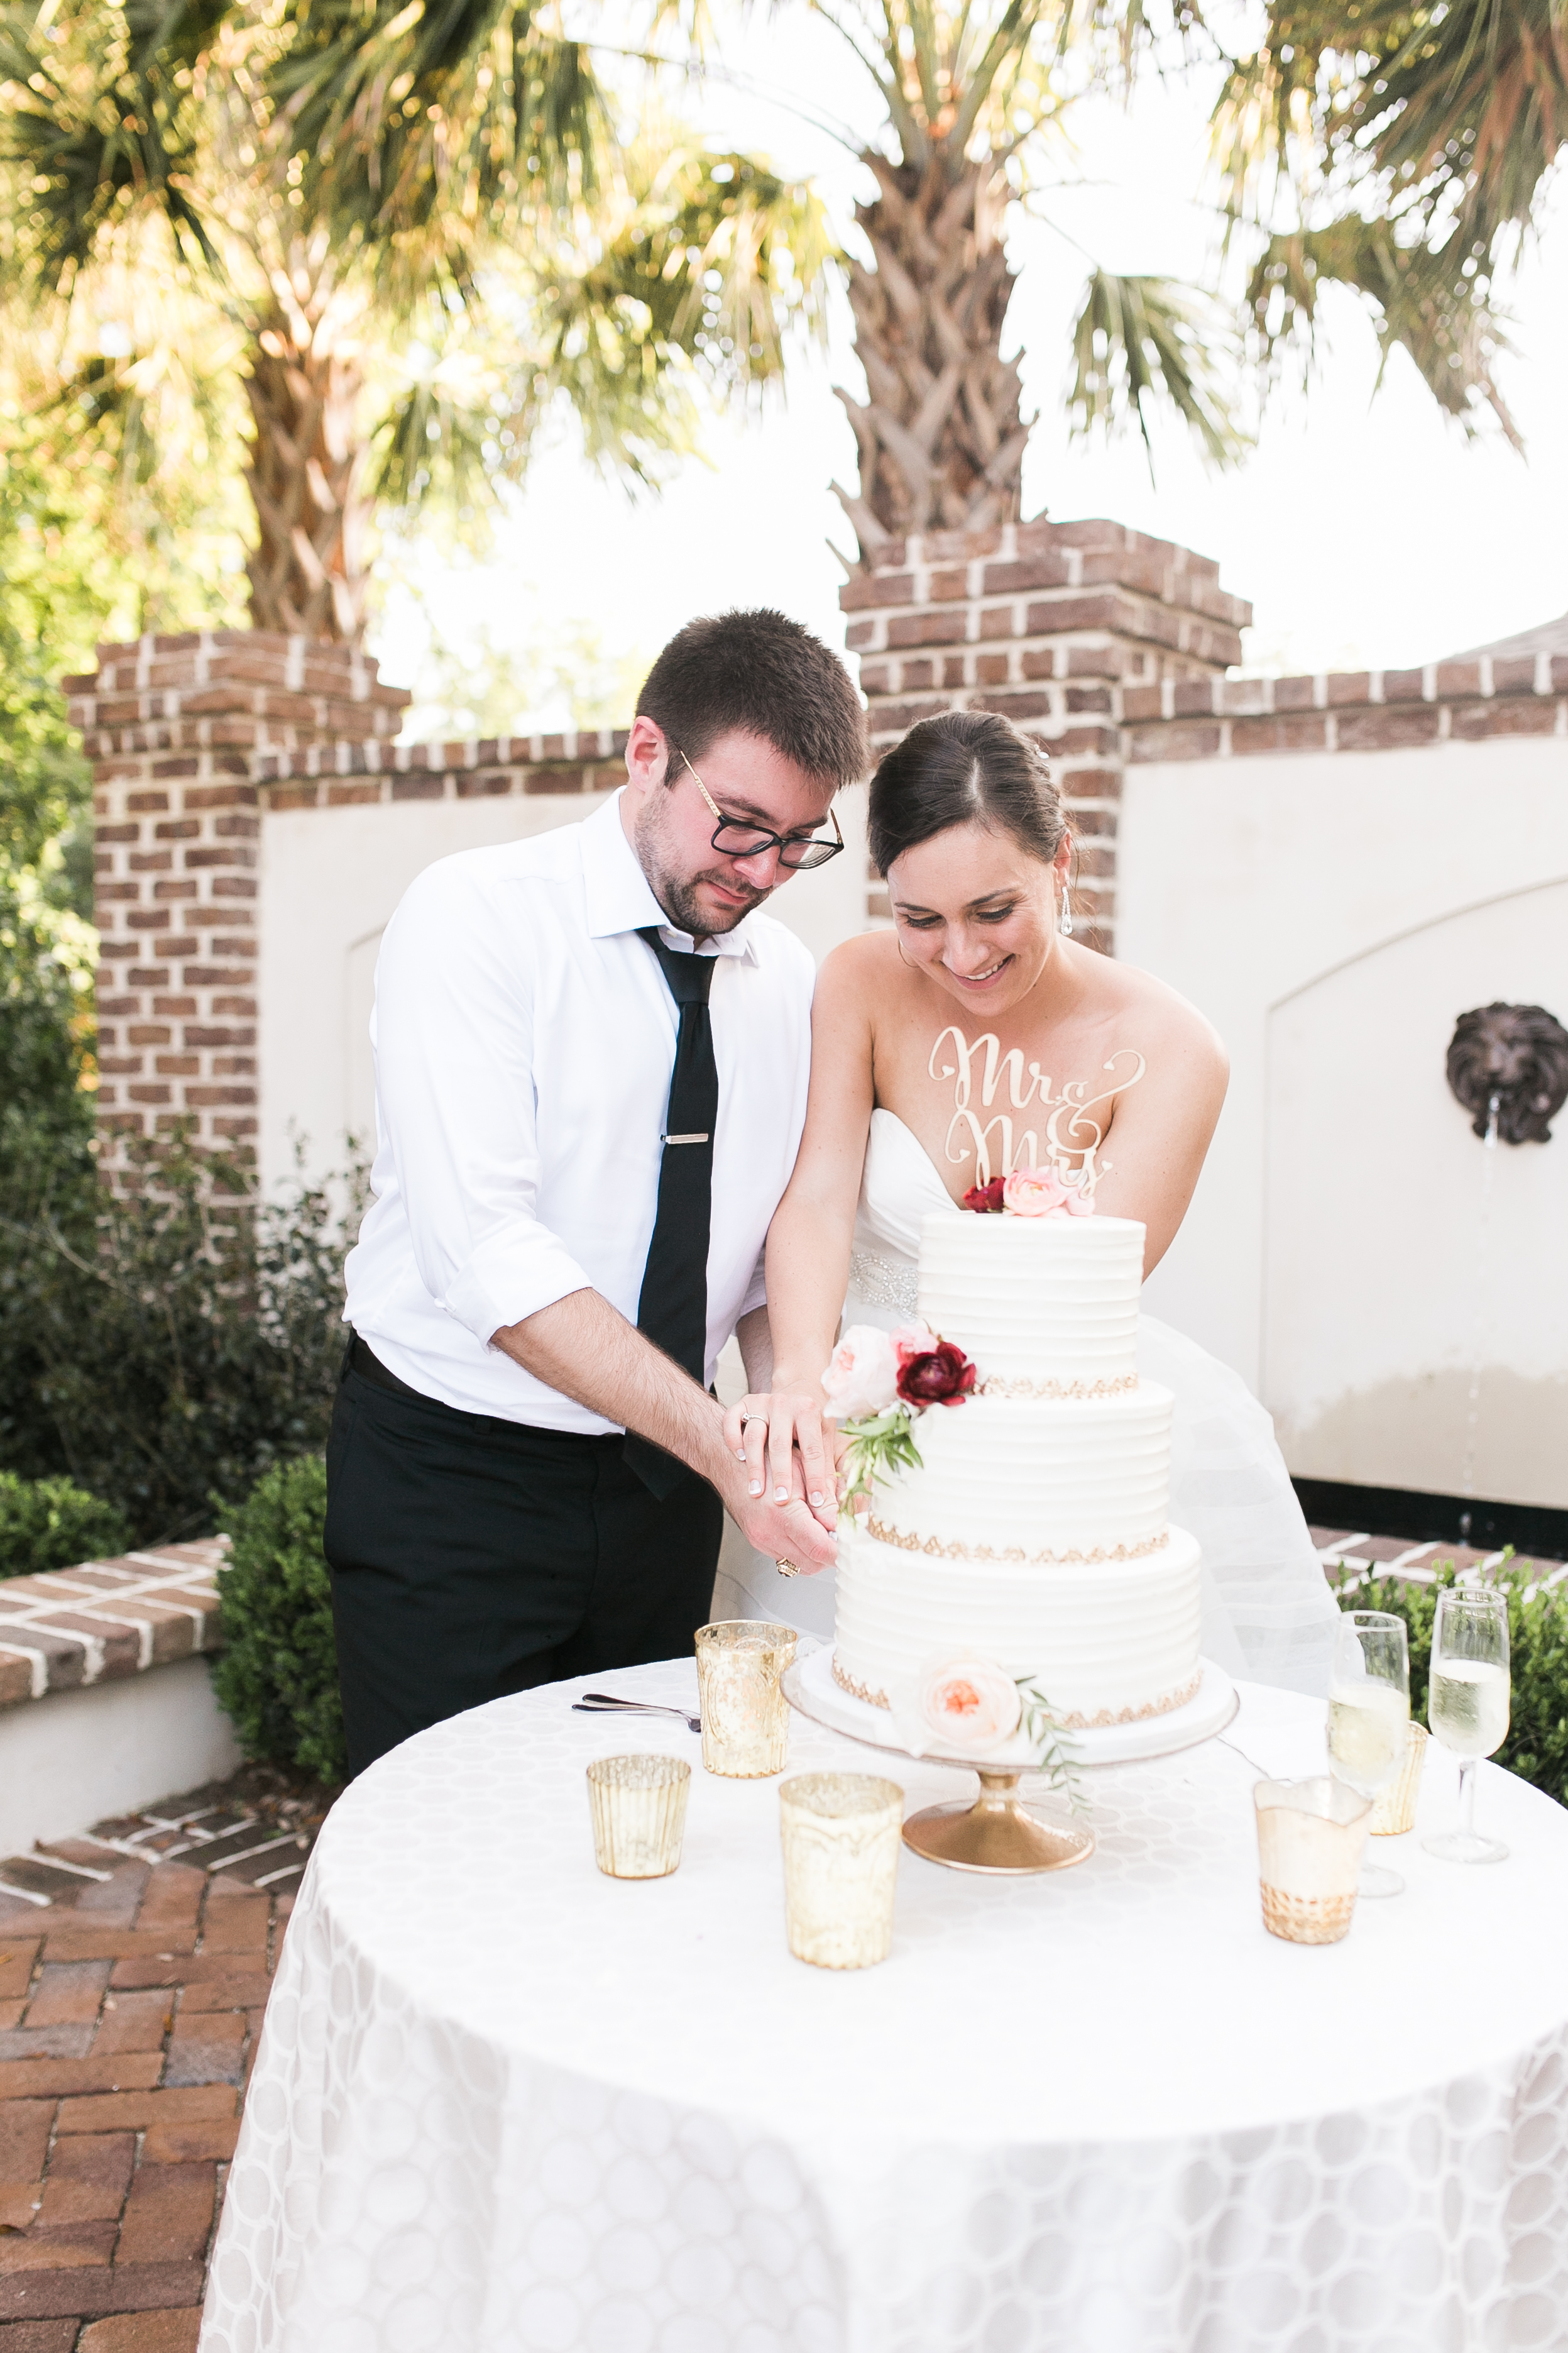 Bride & Groom cutting the cake at Charleston, SC wedding  Colorful outdoor reception at The Thomas Bennett House wedding in Charleston, SC  //  photographed by Jenna Weddings  Traditional wedding ceremony at Cathedral of St. John the Baptist in Charleston, SC  //  A Lowcountry Wedding Magazine & Blog